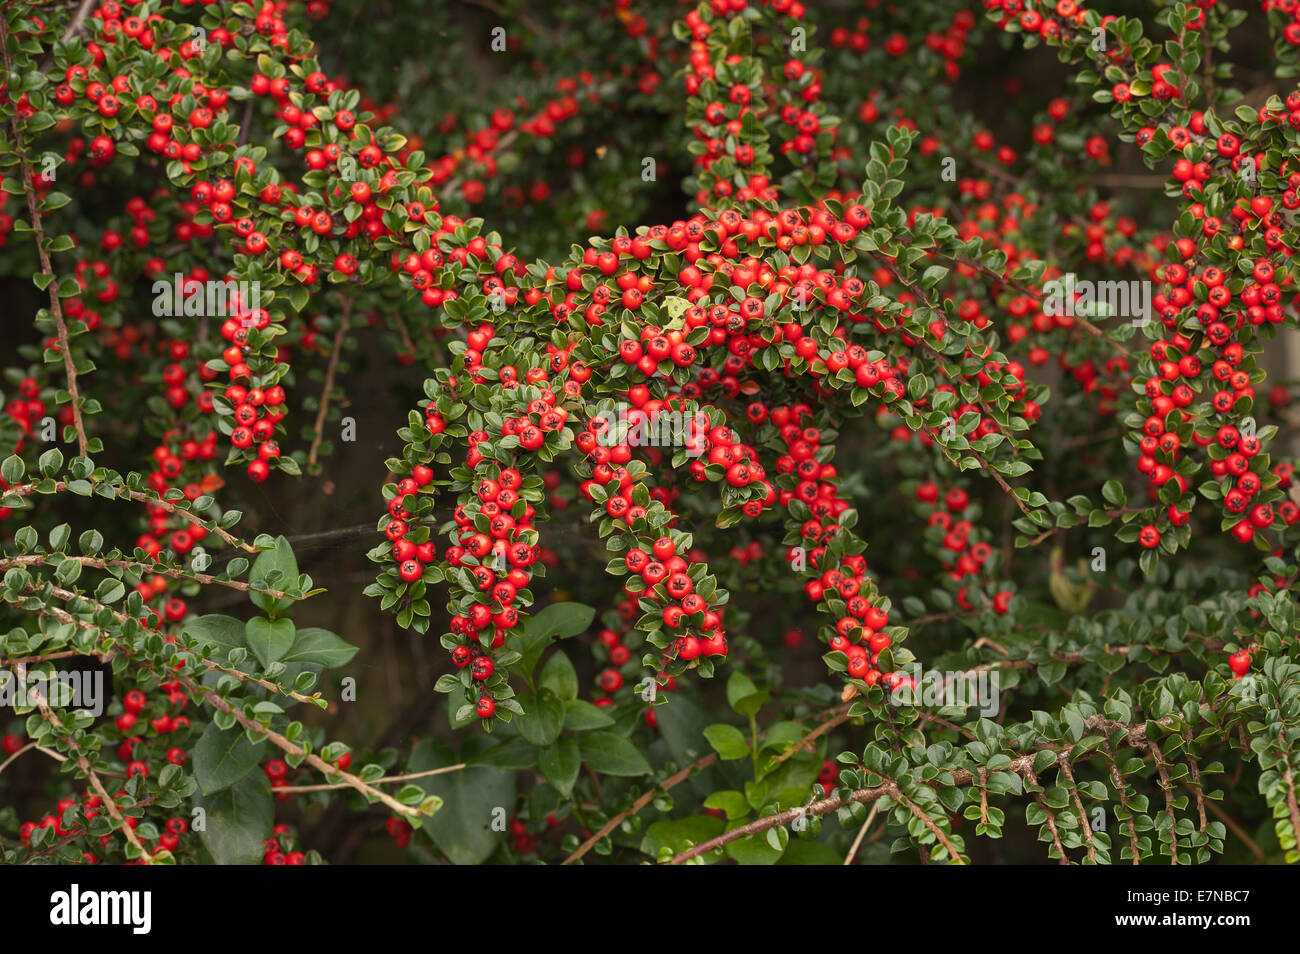 Abundant Line Lines Of Red Berries Cottoneaster Shrub A Great Food